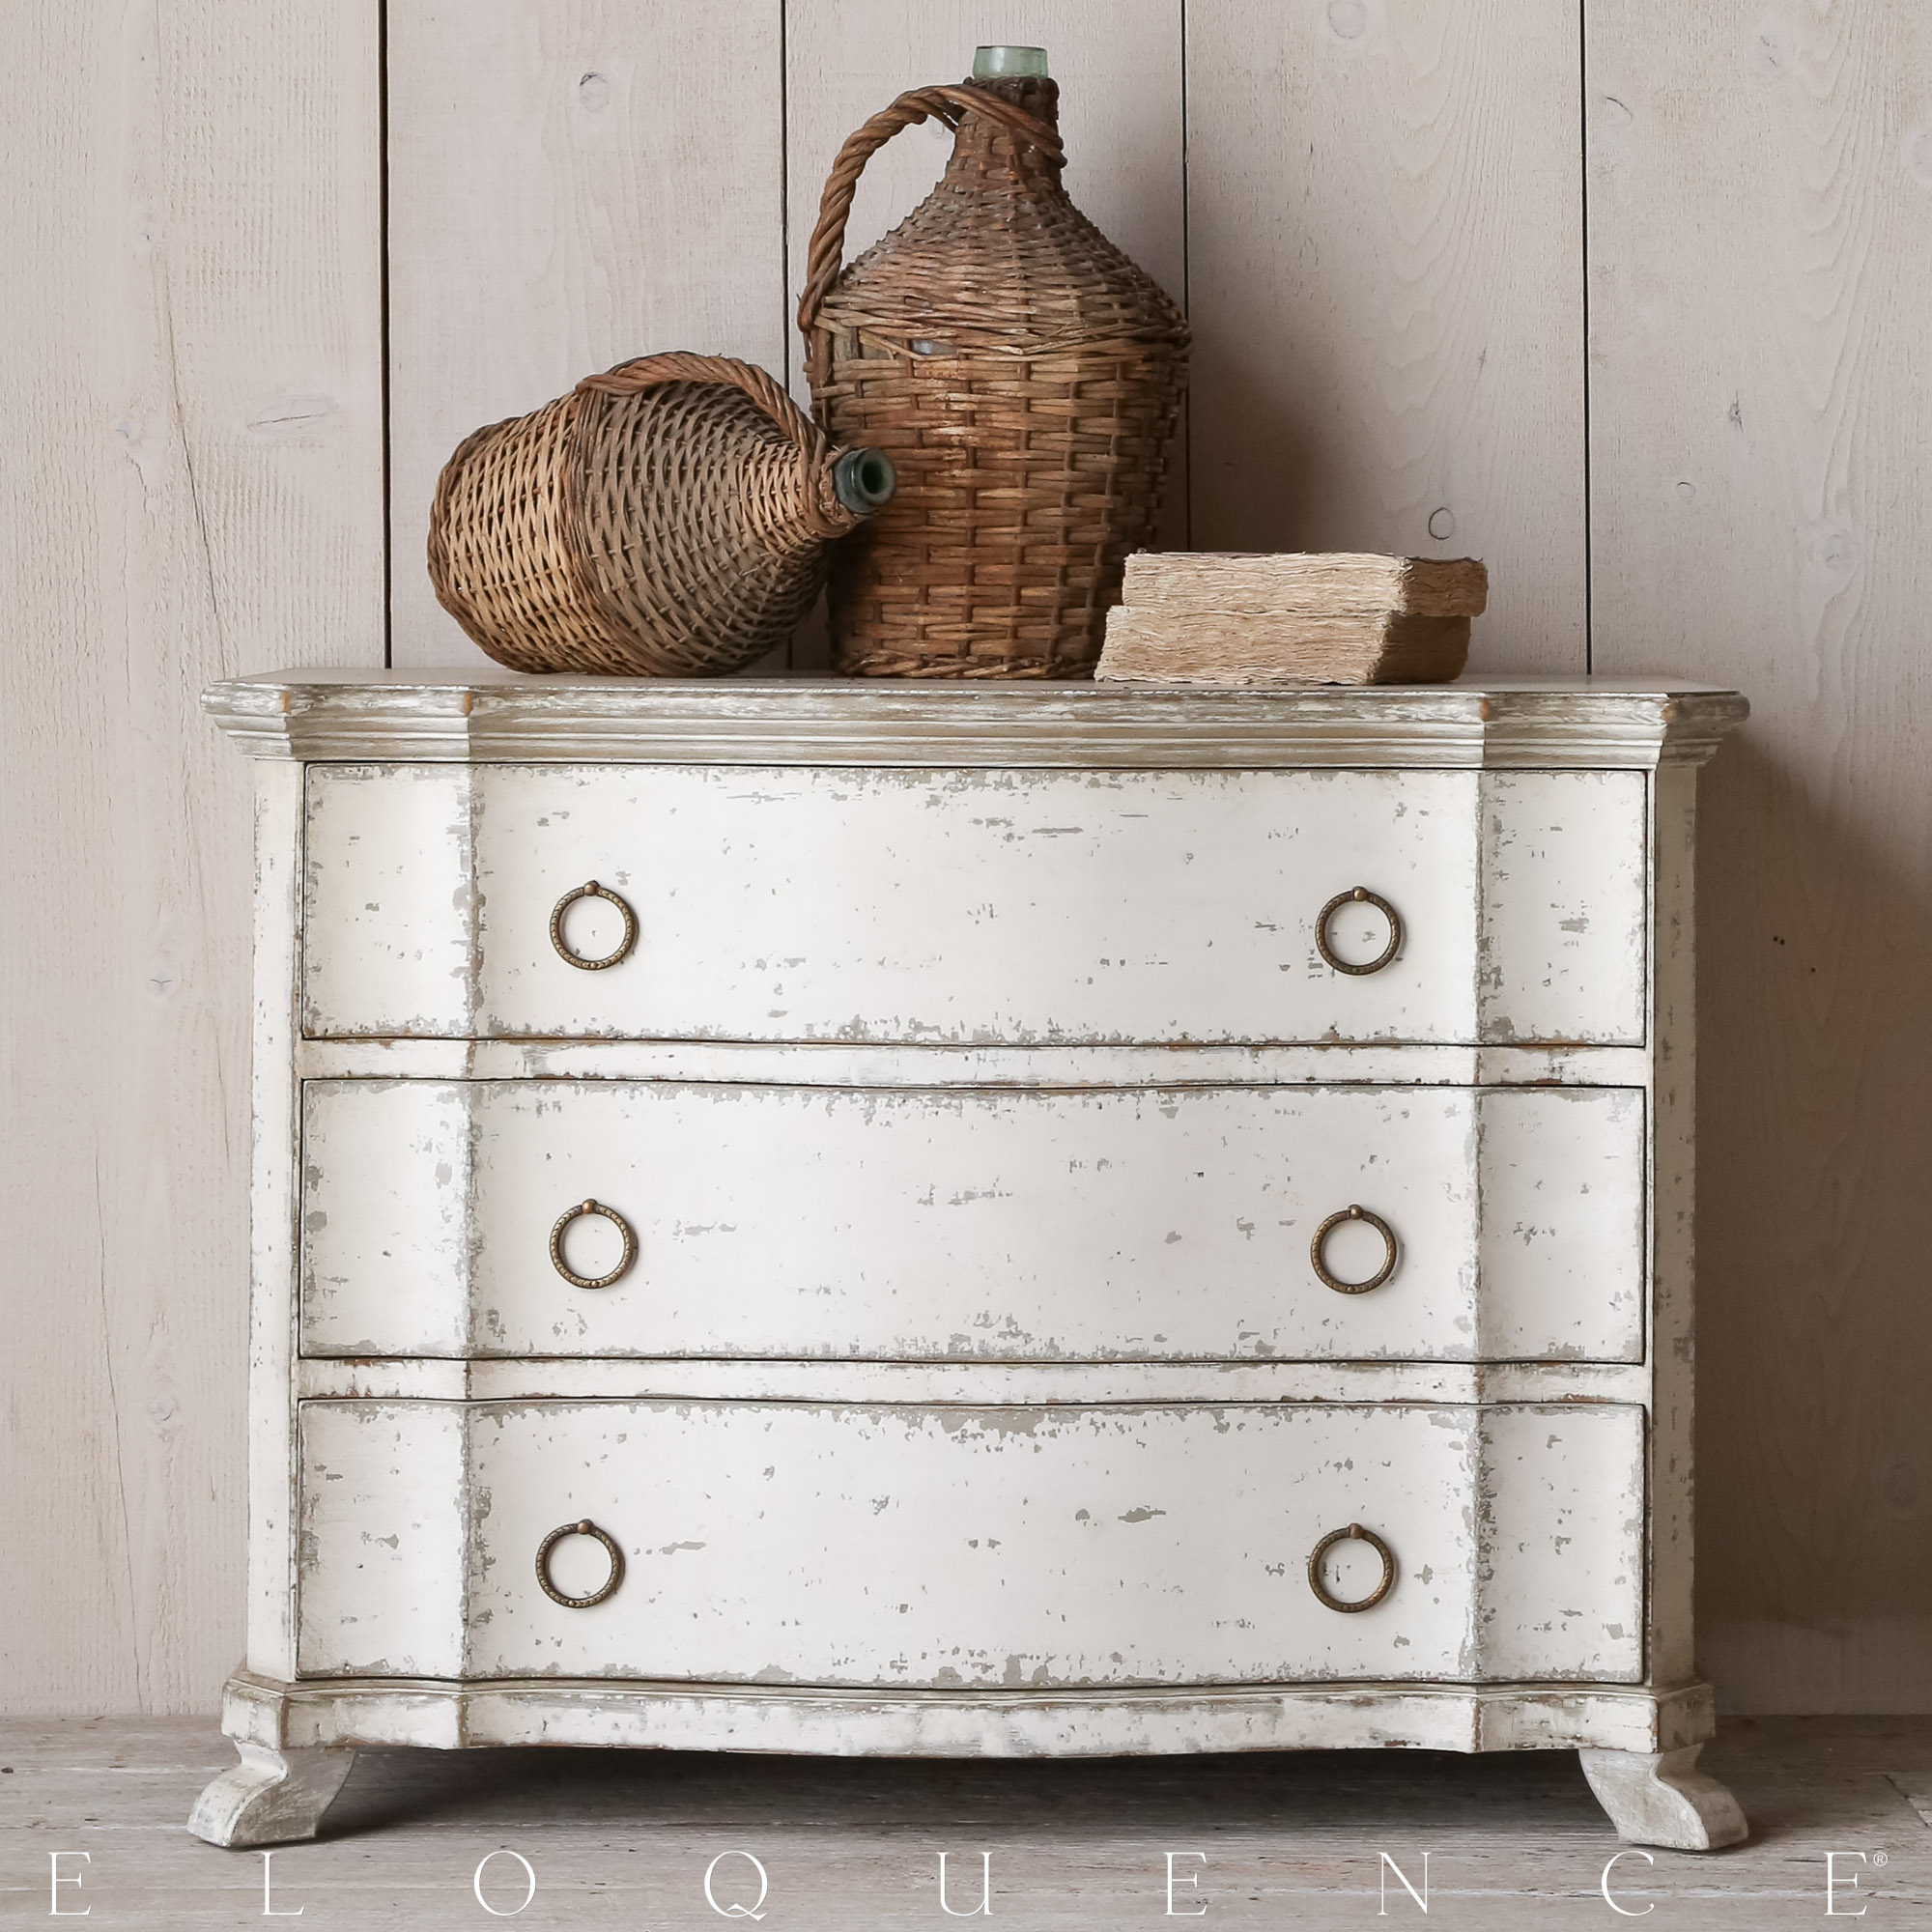 Eloquence DIELCMRC02-ST-1 Petit Bordeaux Commode.jpg